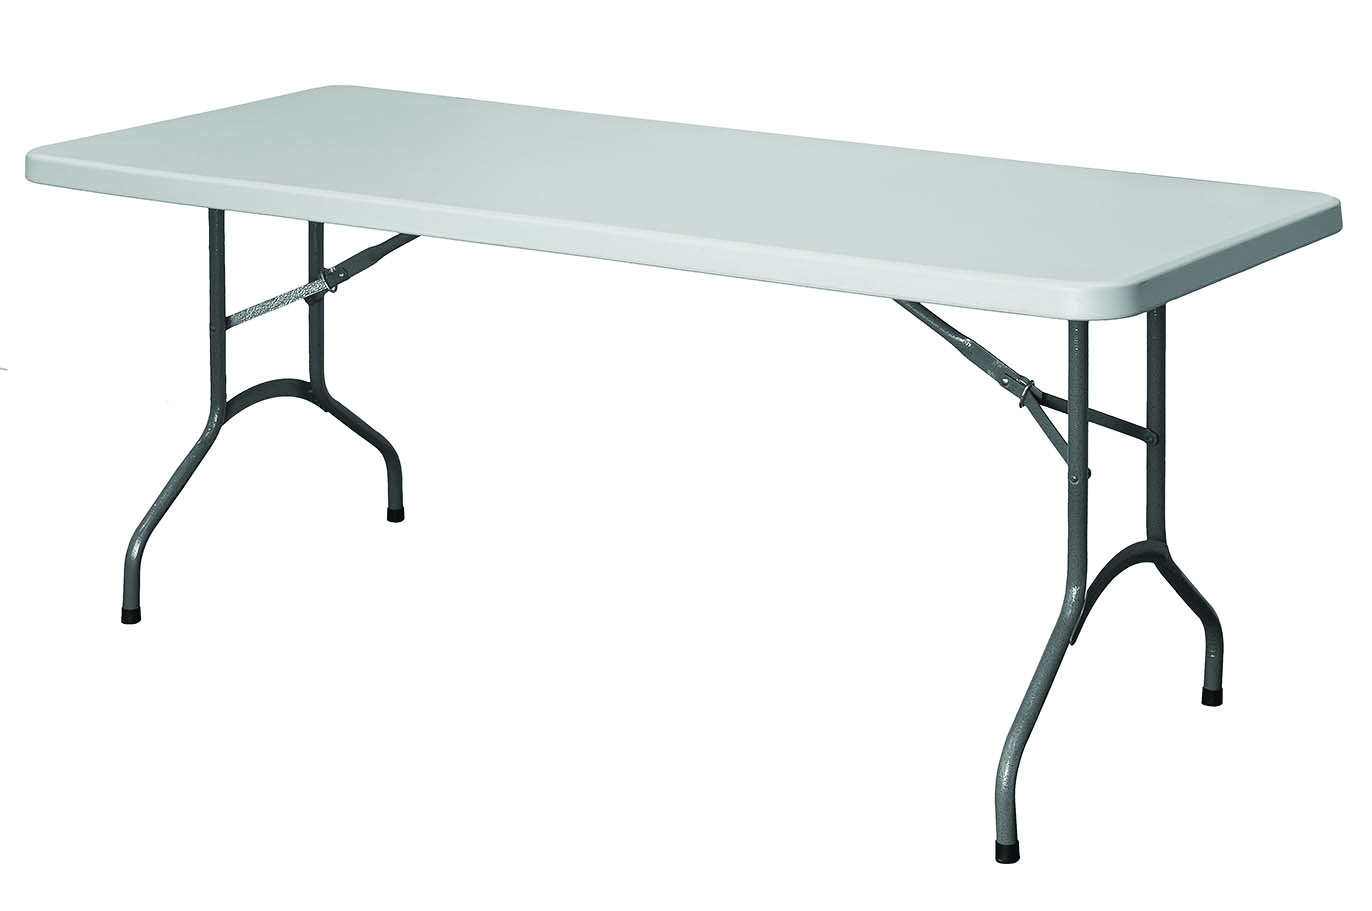 Site Equipment 1800 x 600mm Canteen Table with fold down legs and plastic feet